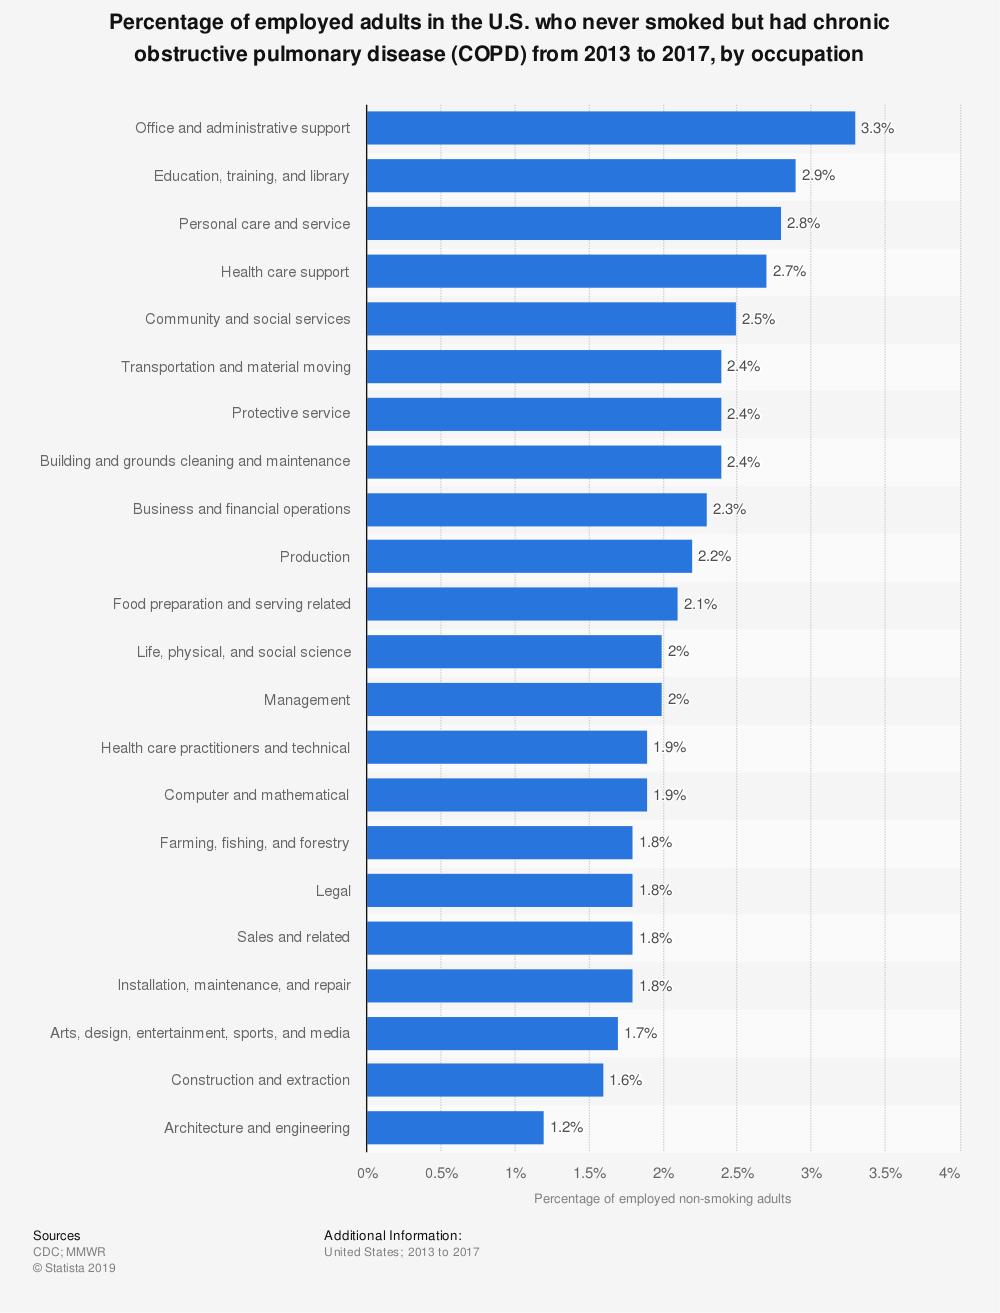 Statistic: Percentage of employed adults in the U.S. who never smoked but had chronic obstructive pulmonary disease (COPD) from 2013 to 2017, by occupation | Statista